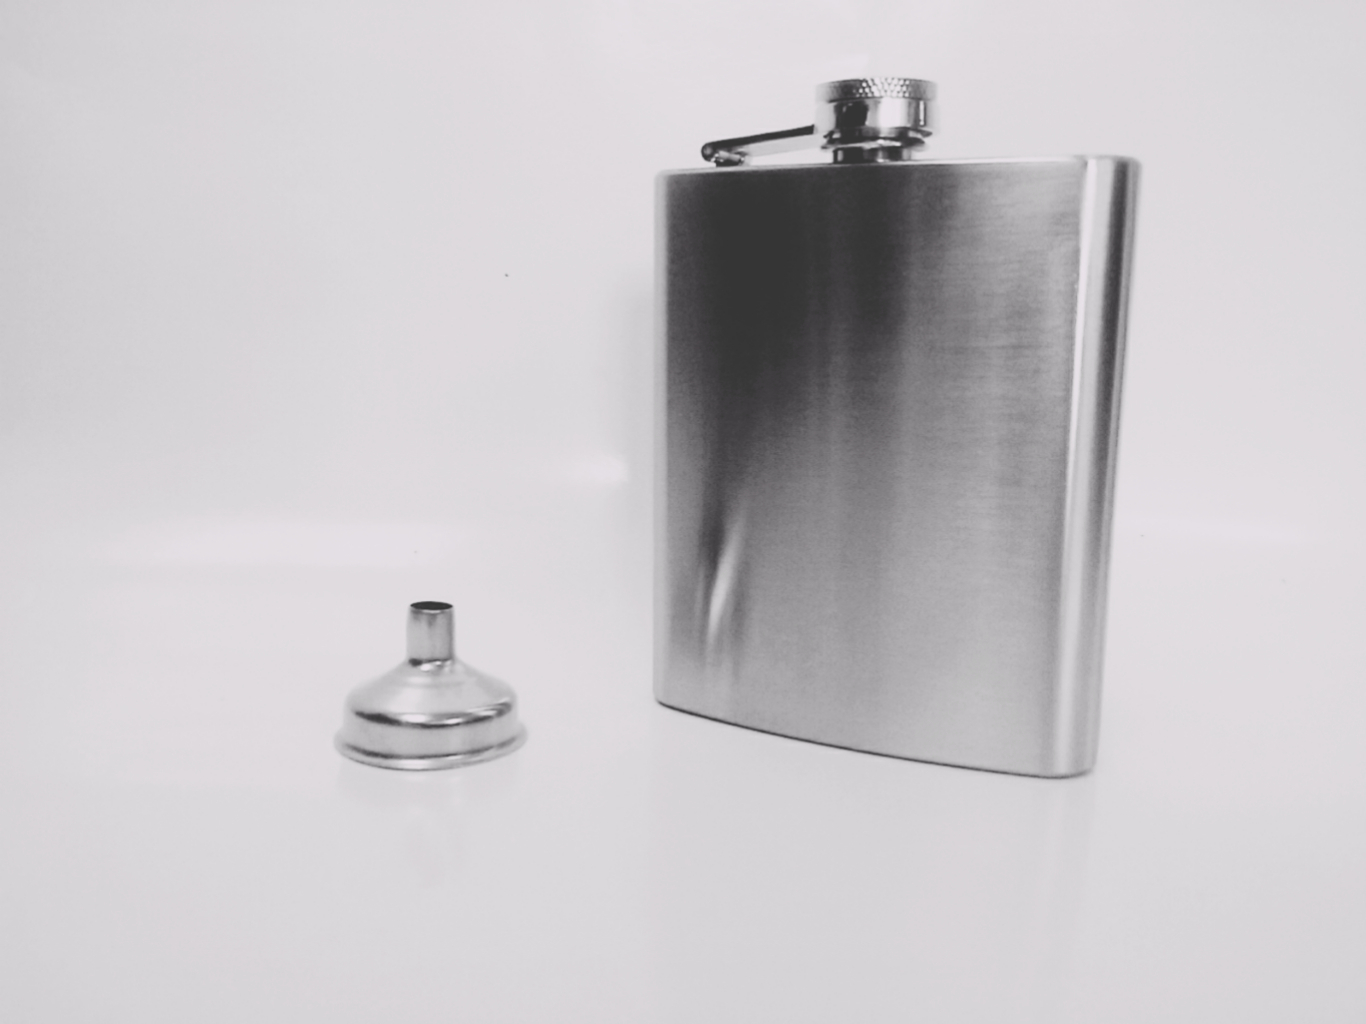 7 oz Stainless Steel Hip Flask with Funnel - $5.27